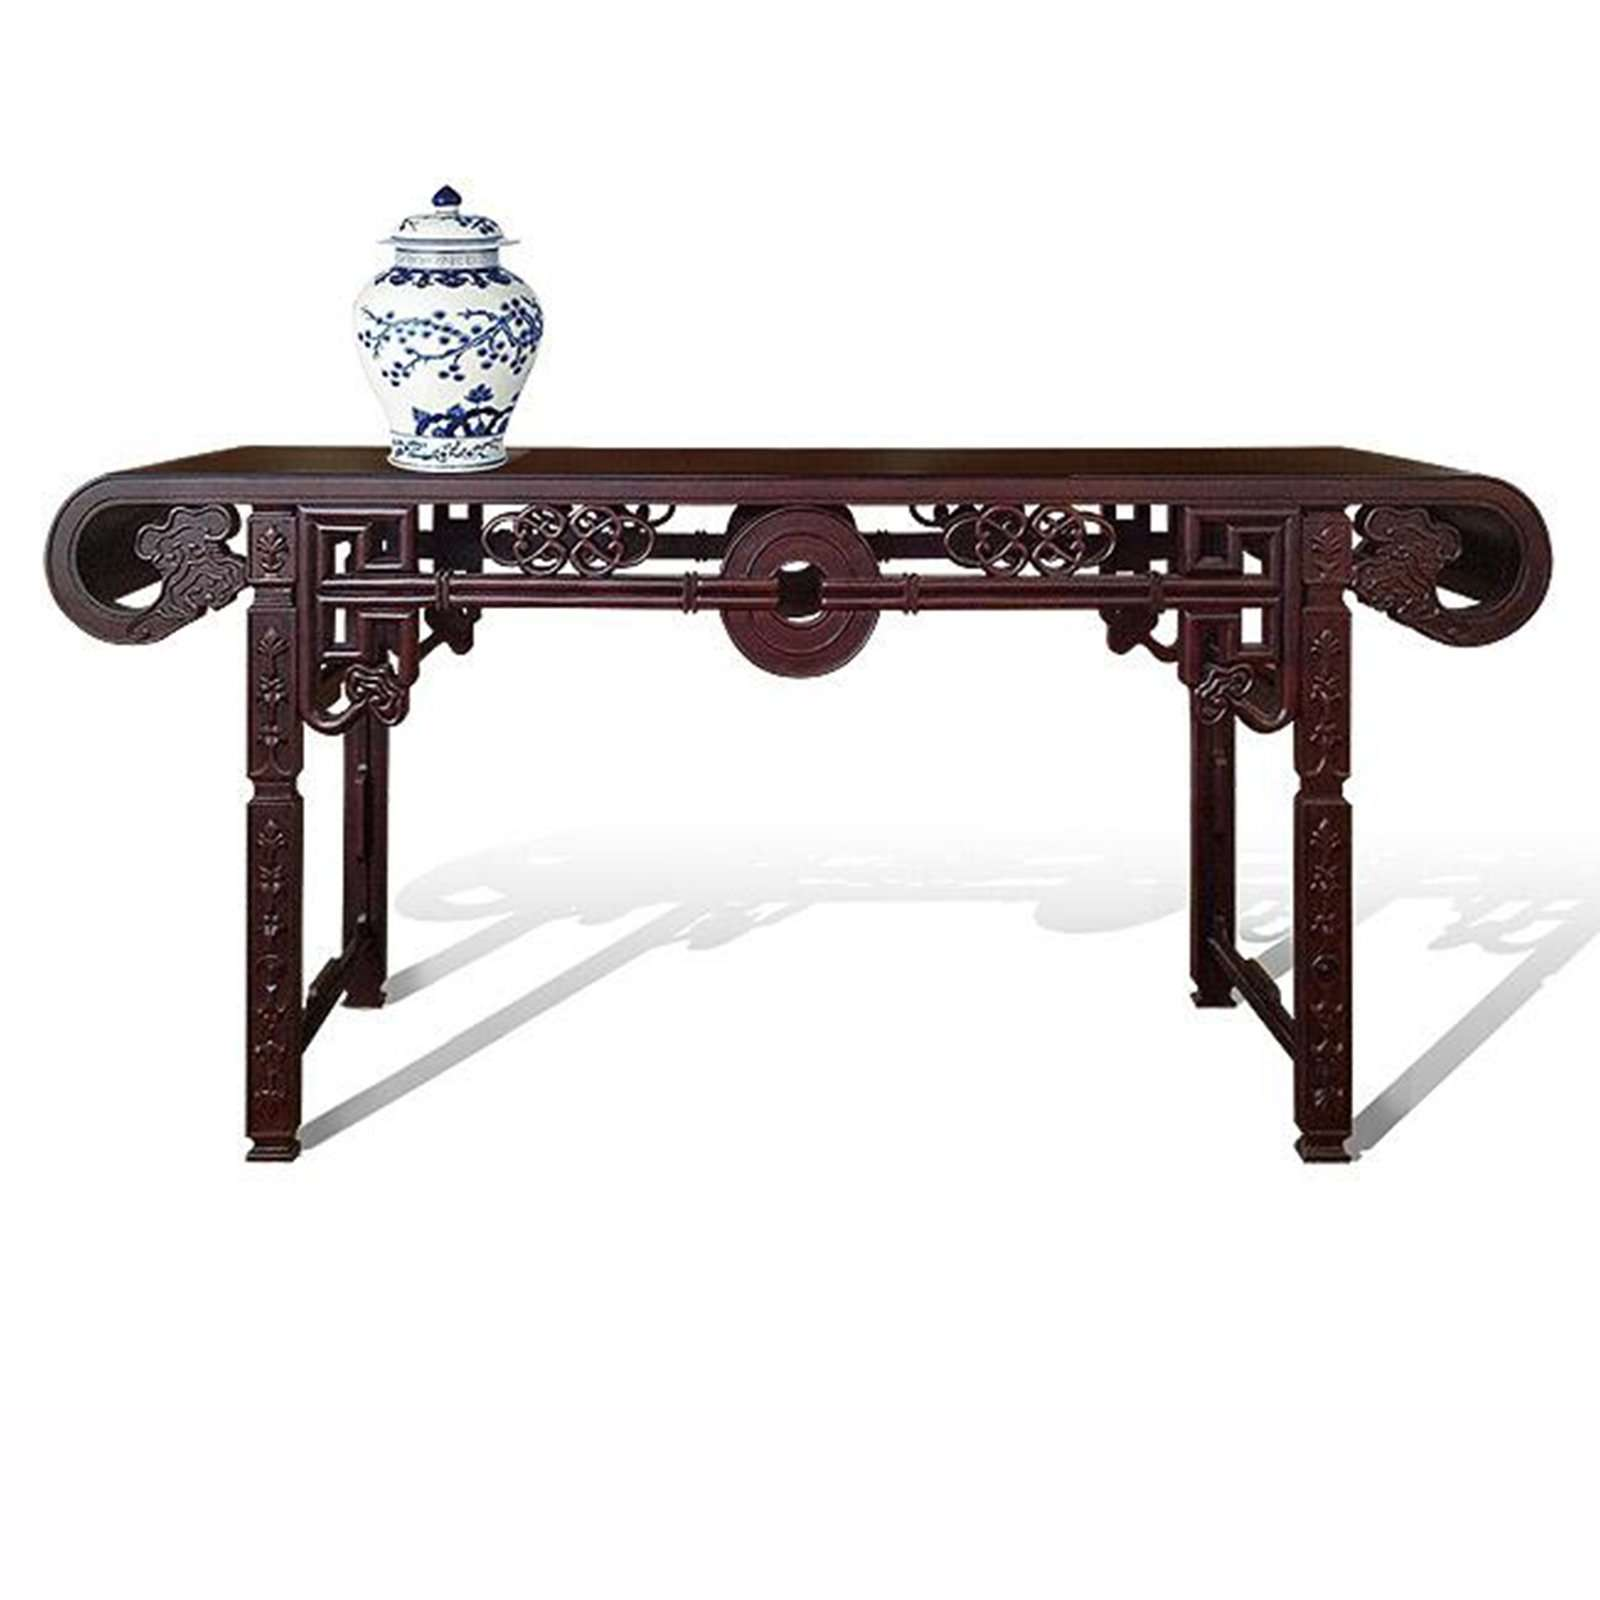 PARAGON CONSOLE 1 - STUART MEMBERY HOME COLLECTION